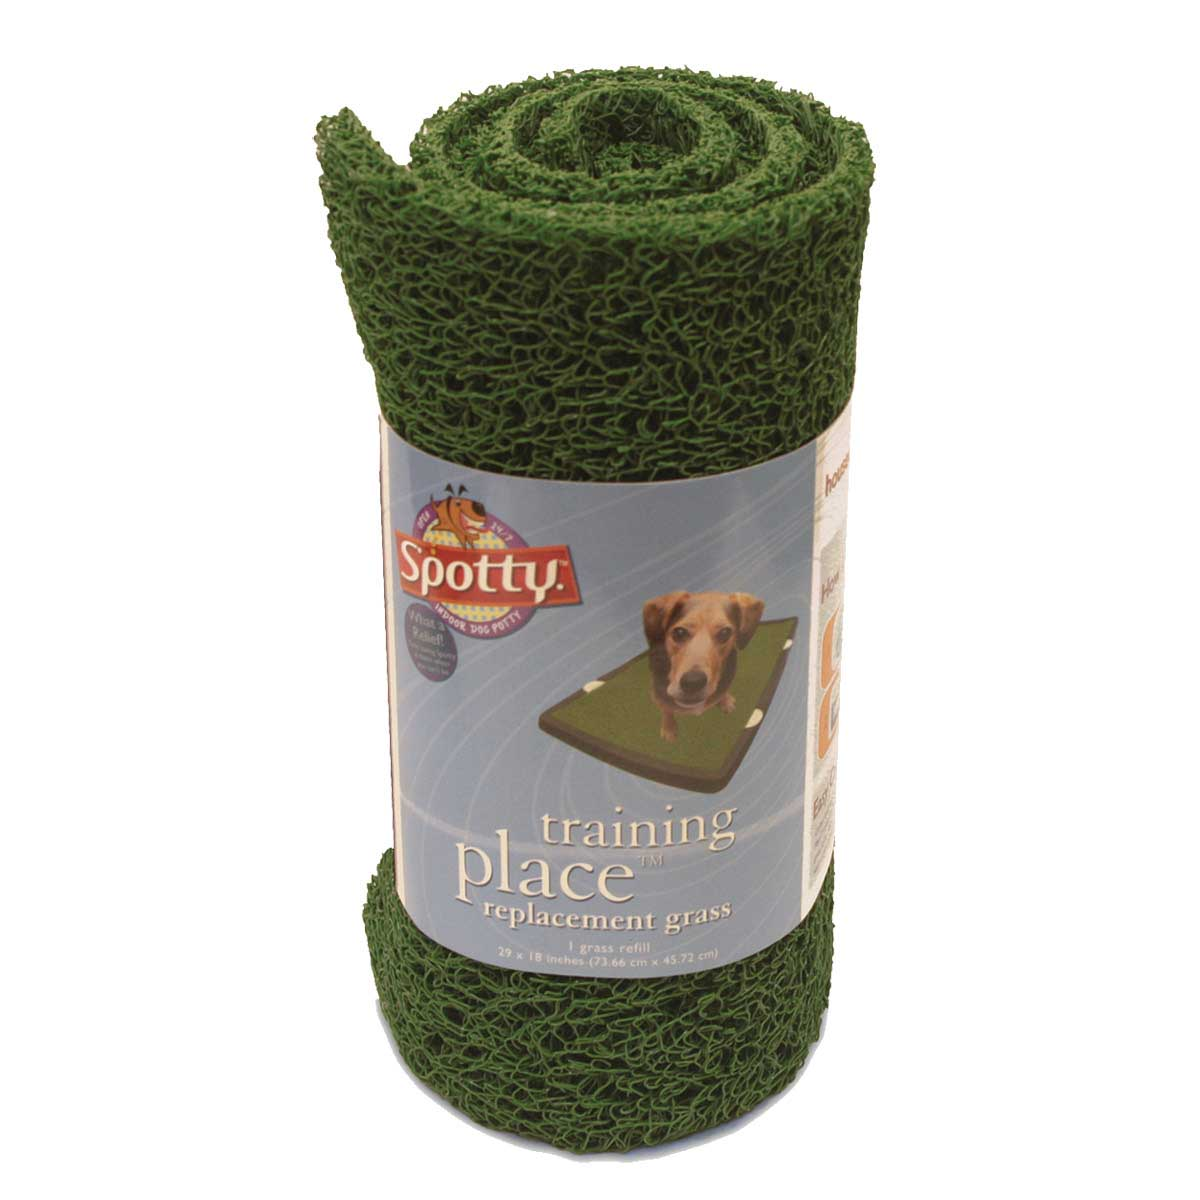 Spotty Training Place Dog Potty Grass Refill | Ryan\'s Pet Supplies